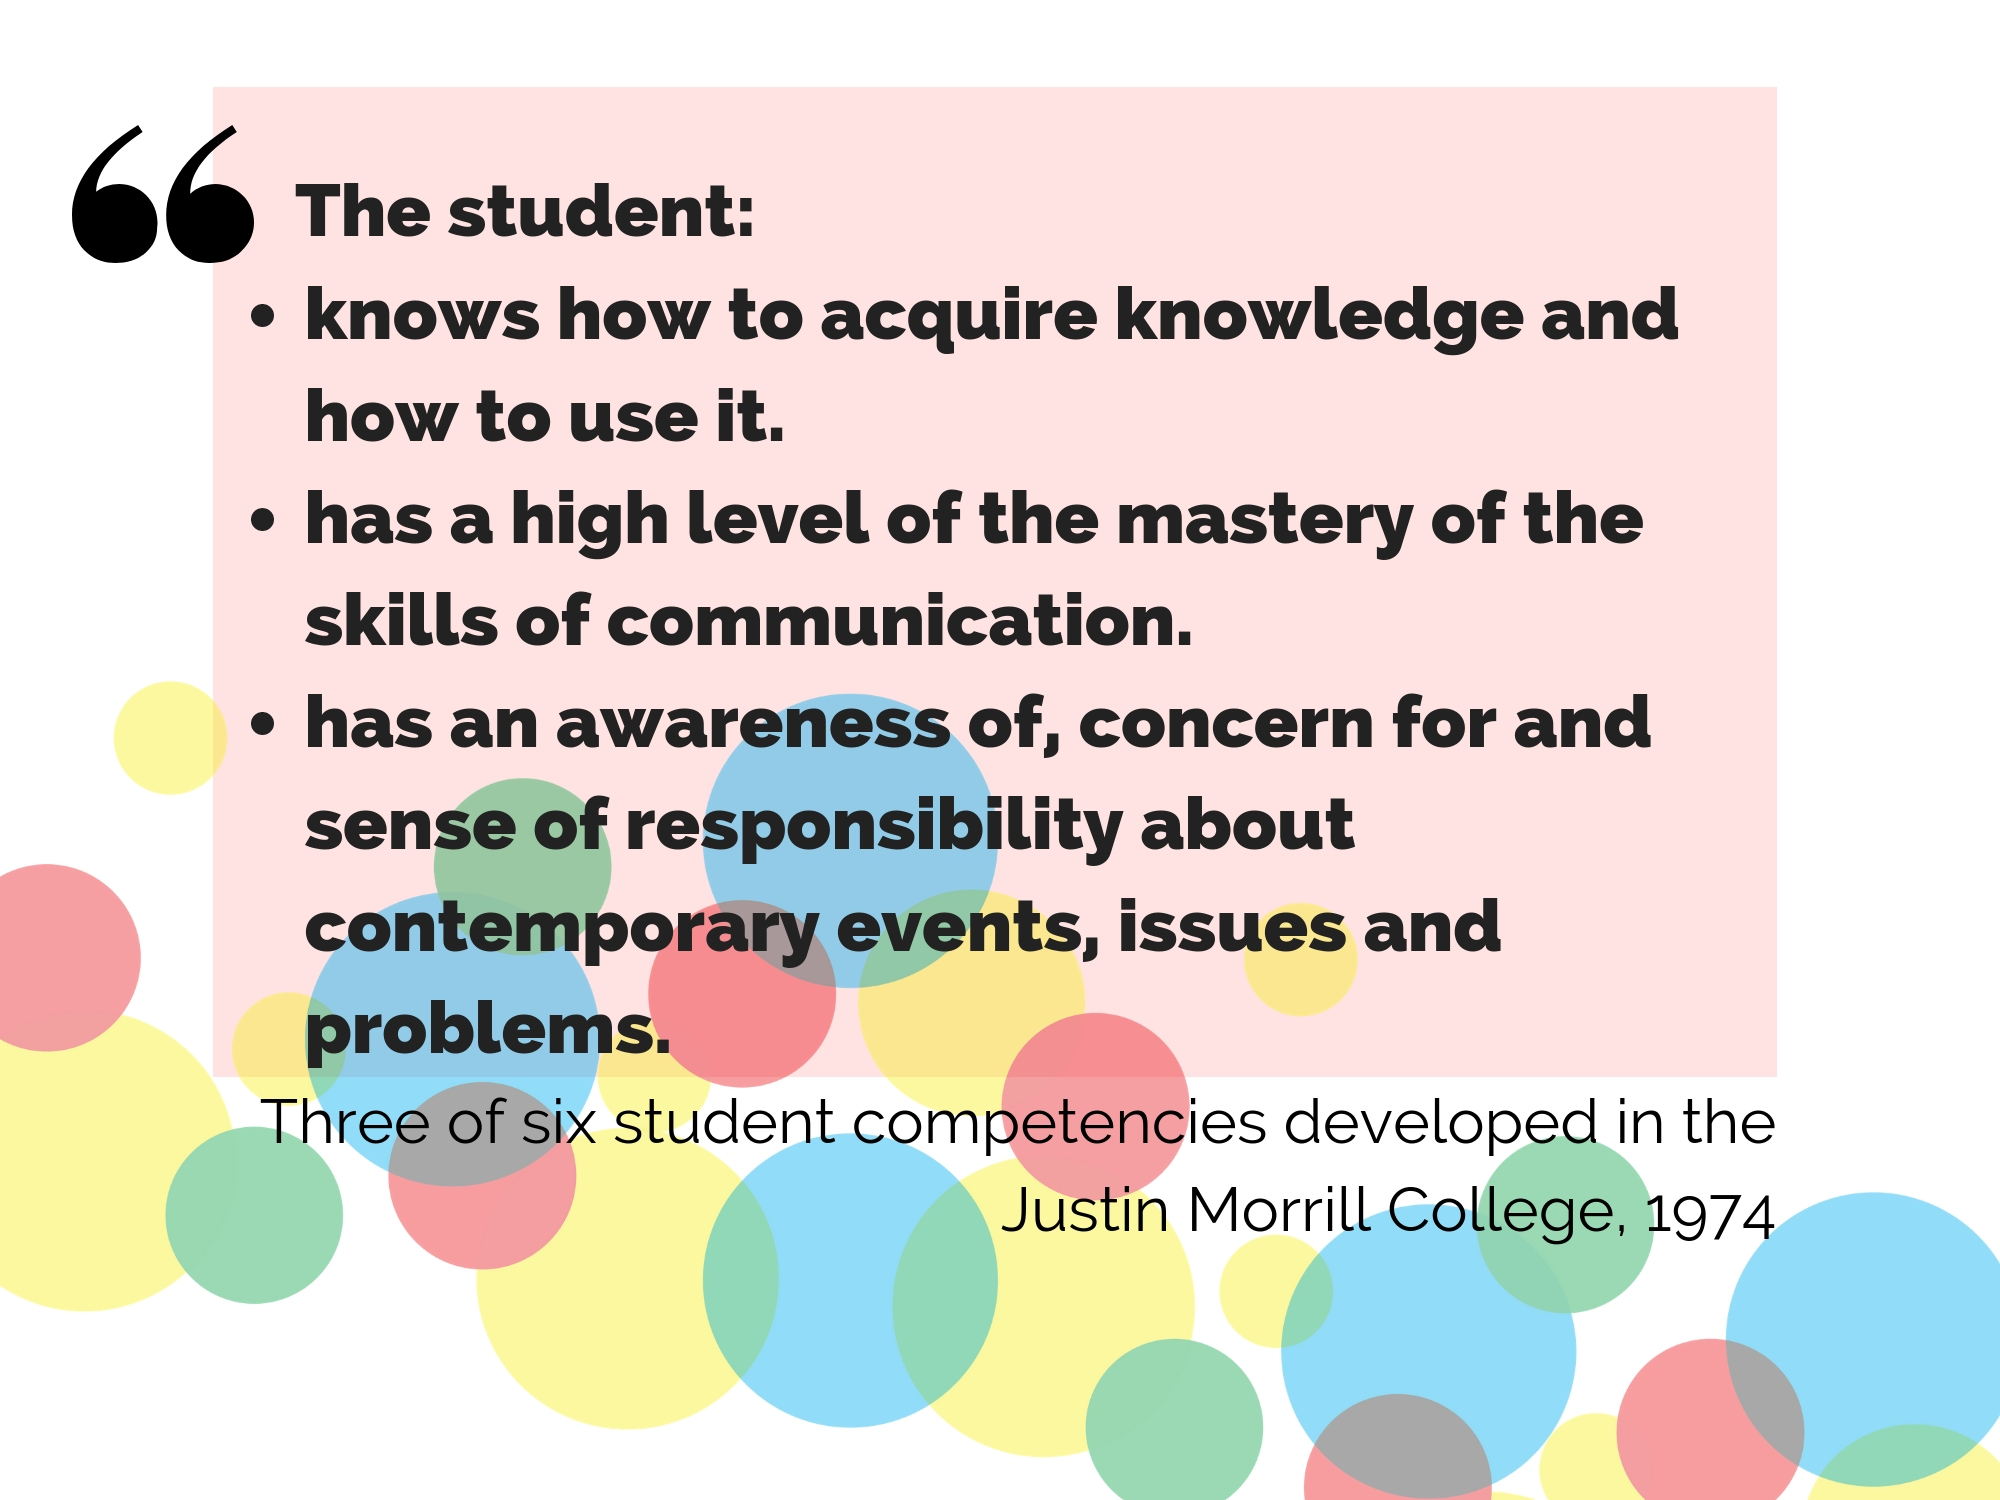 Three of six student competencies developed by faculty in the Justin Morrill College in 1974